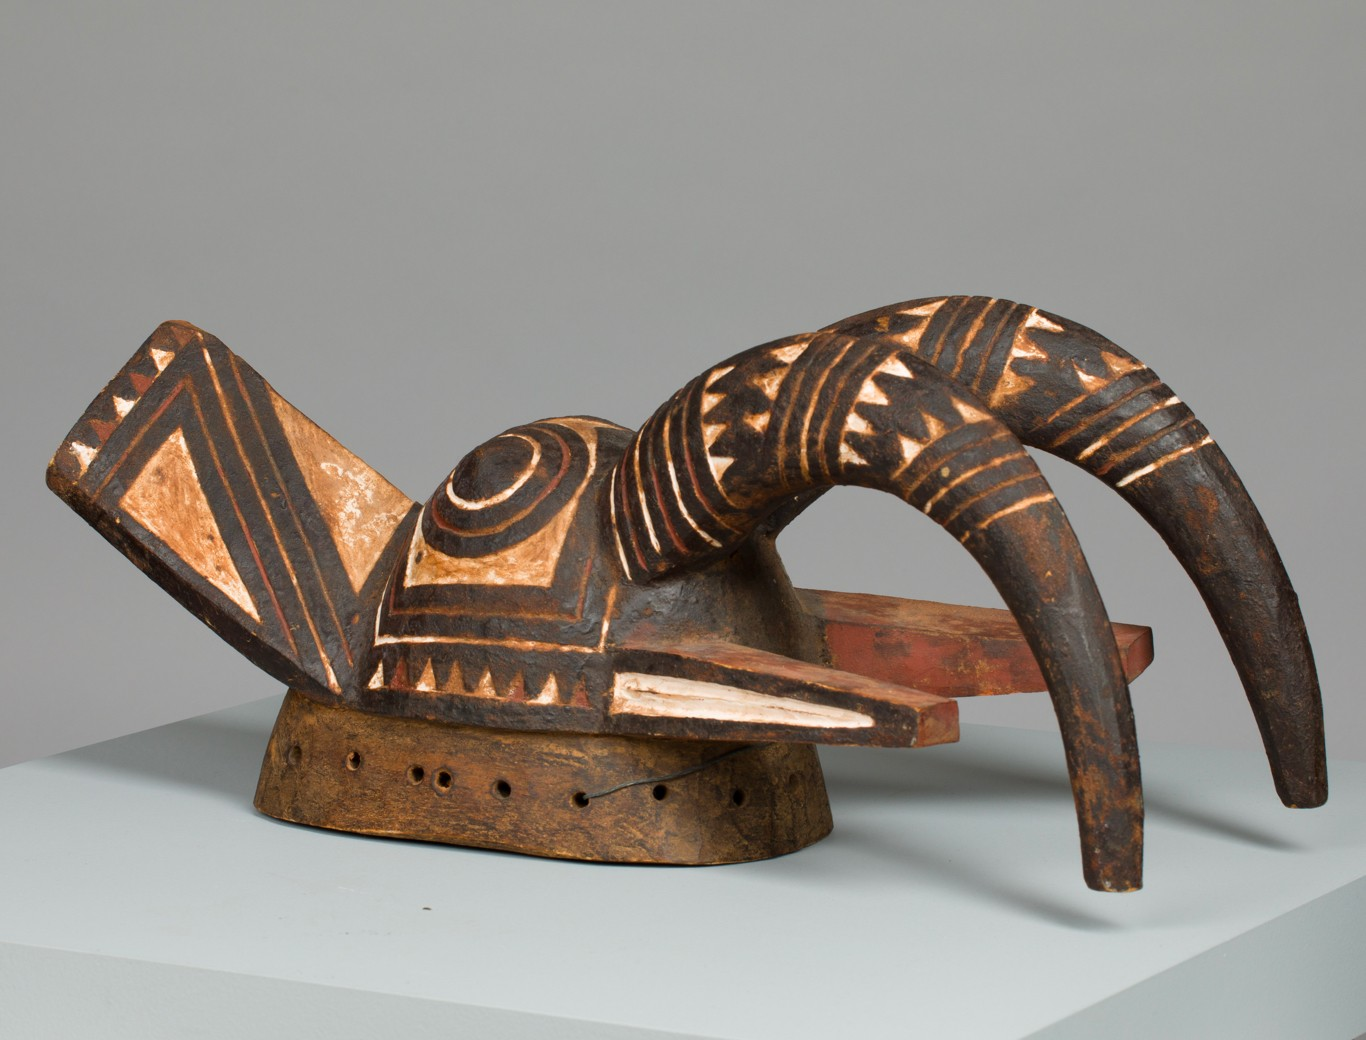 Koan Mask, by the Nuna (Nunama) of Burkina Faso. Part of the Palmer Museum's African Brilliance collection catalogued by the VRC.